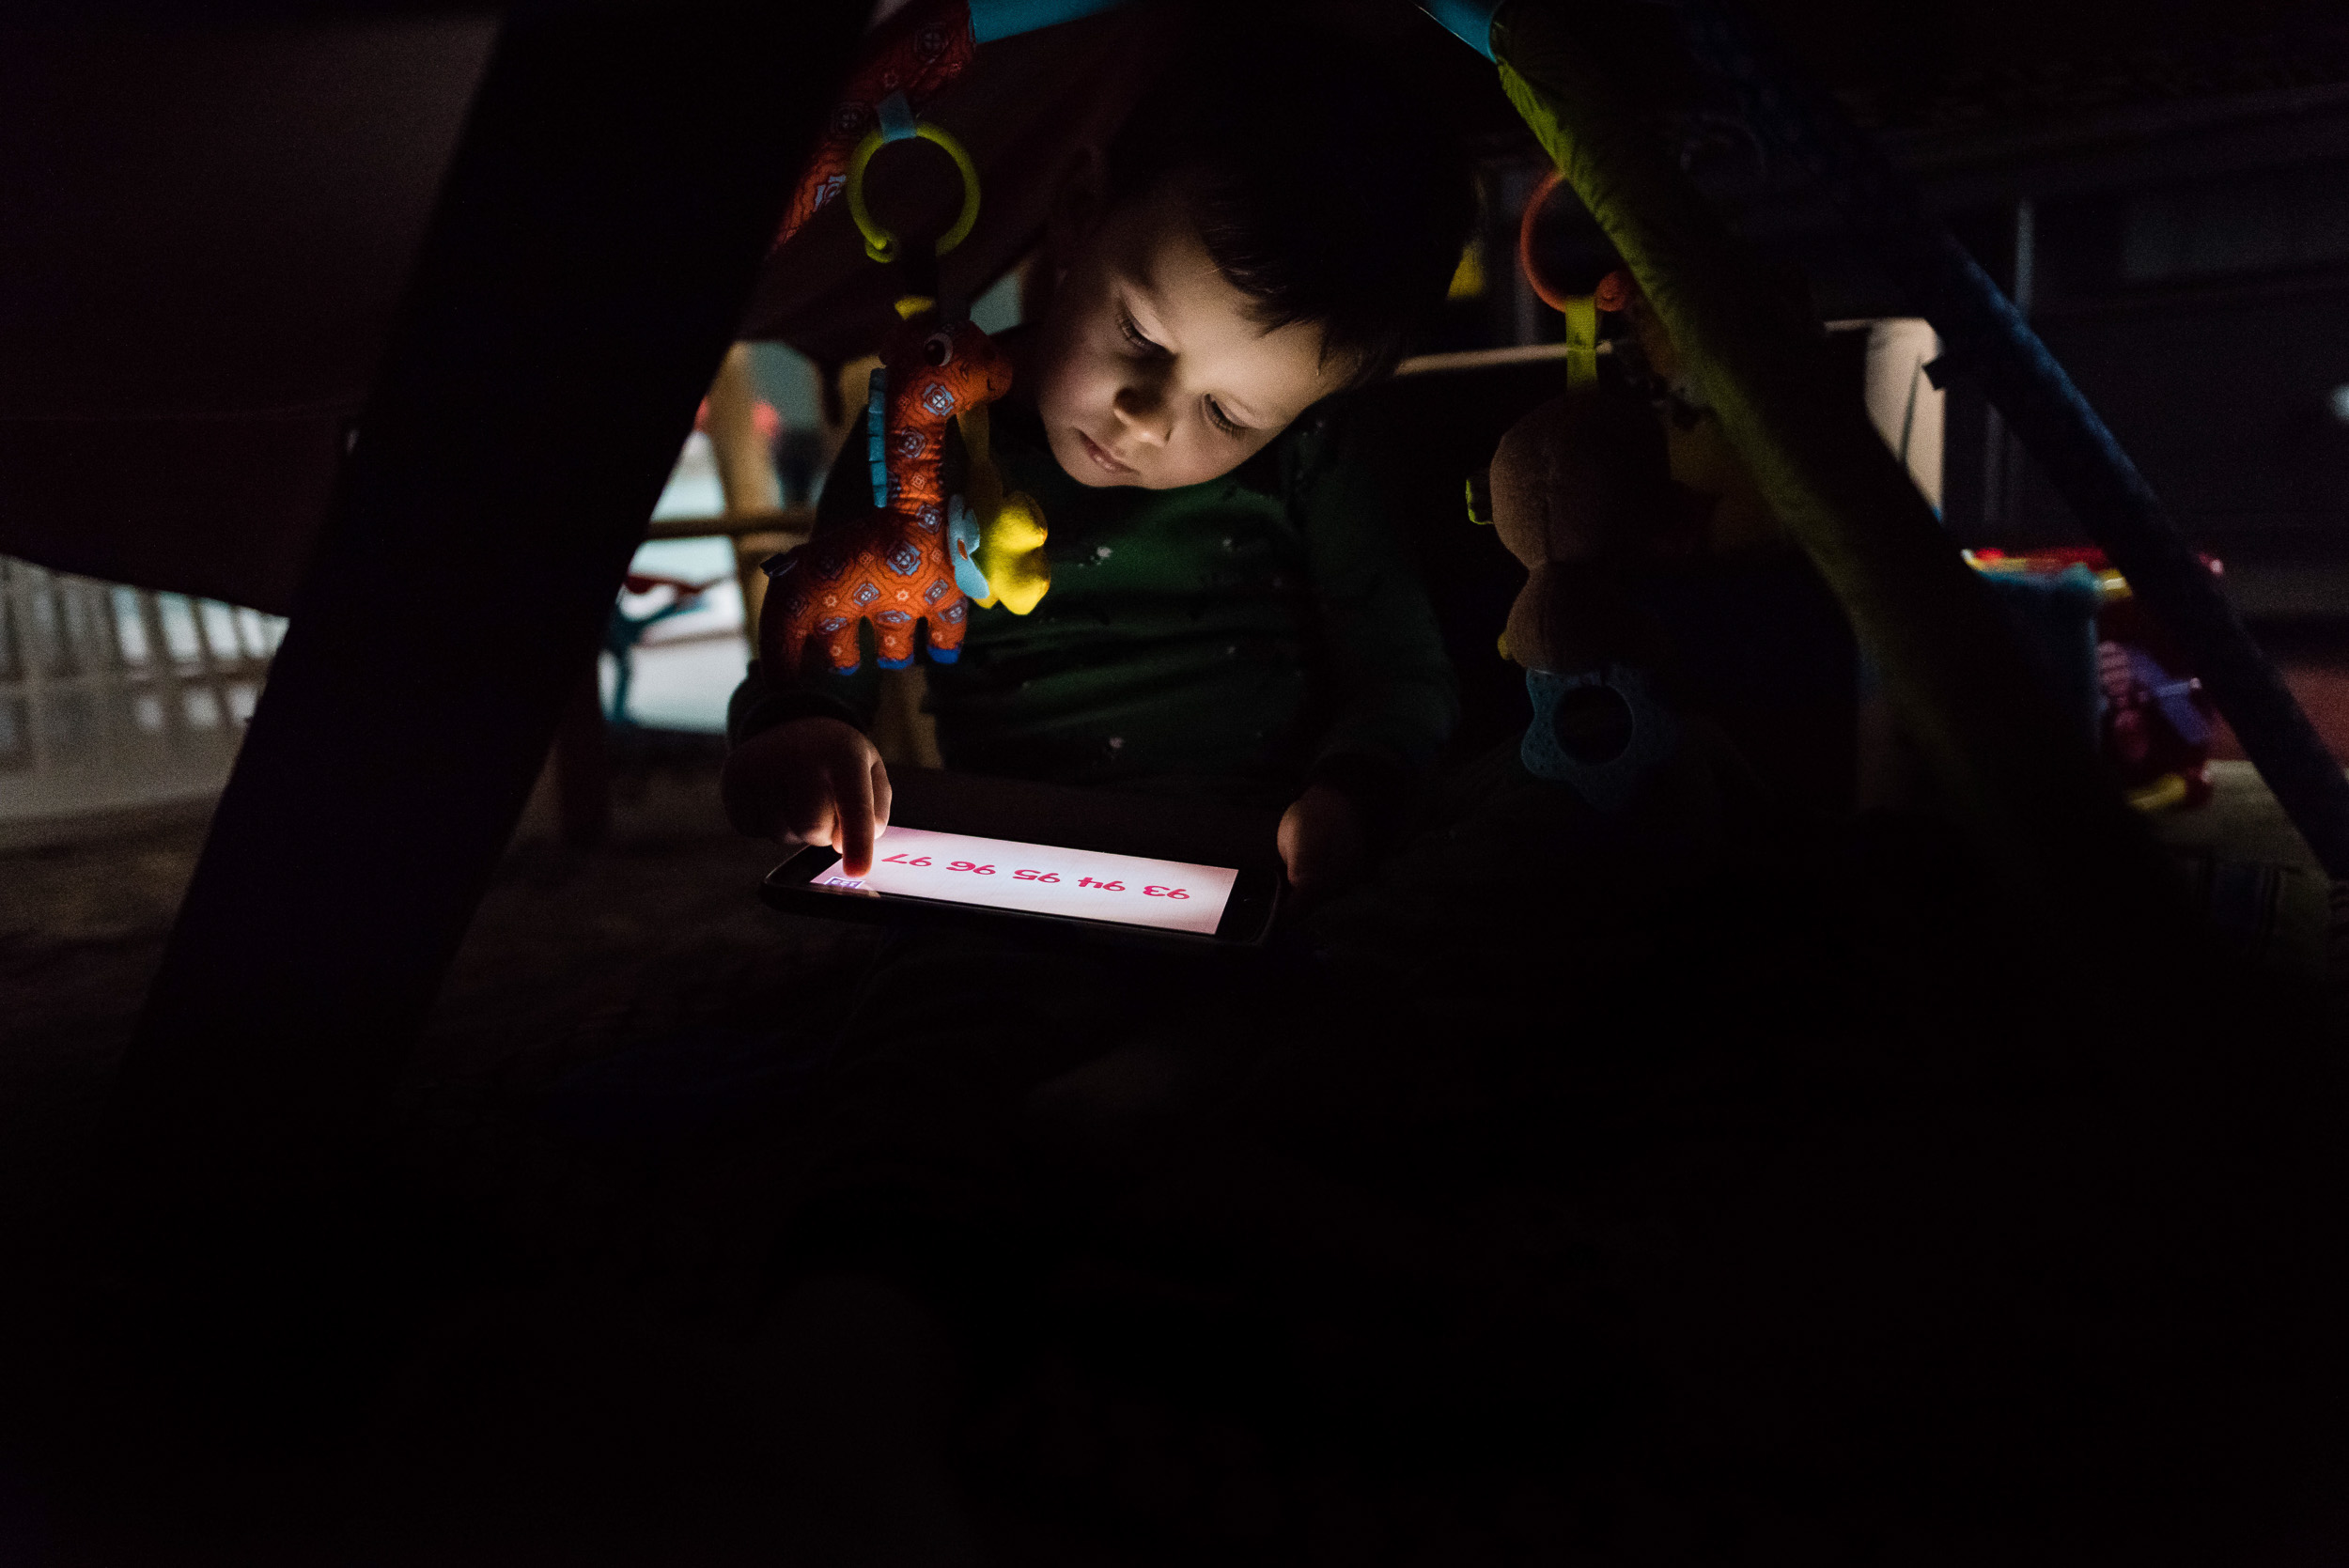 Boy playing with tablet under blanket fort by Northern Virginia Family Photographer Nicole Sanchez